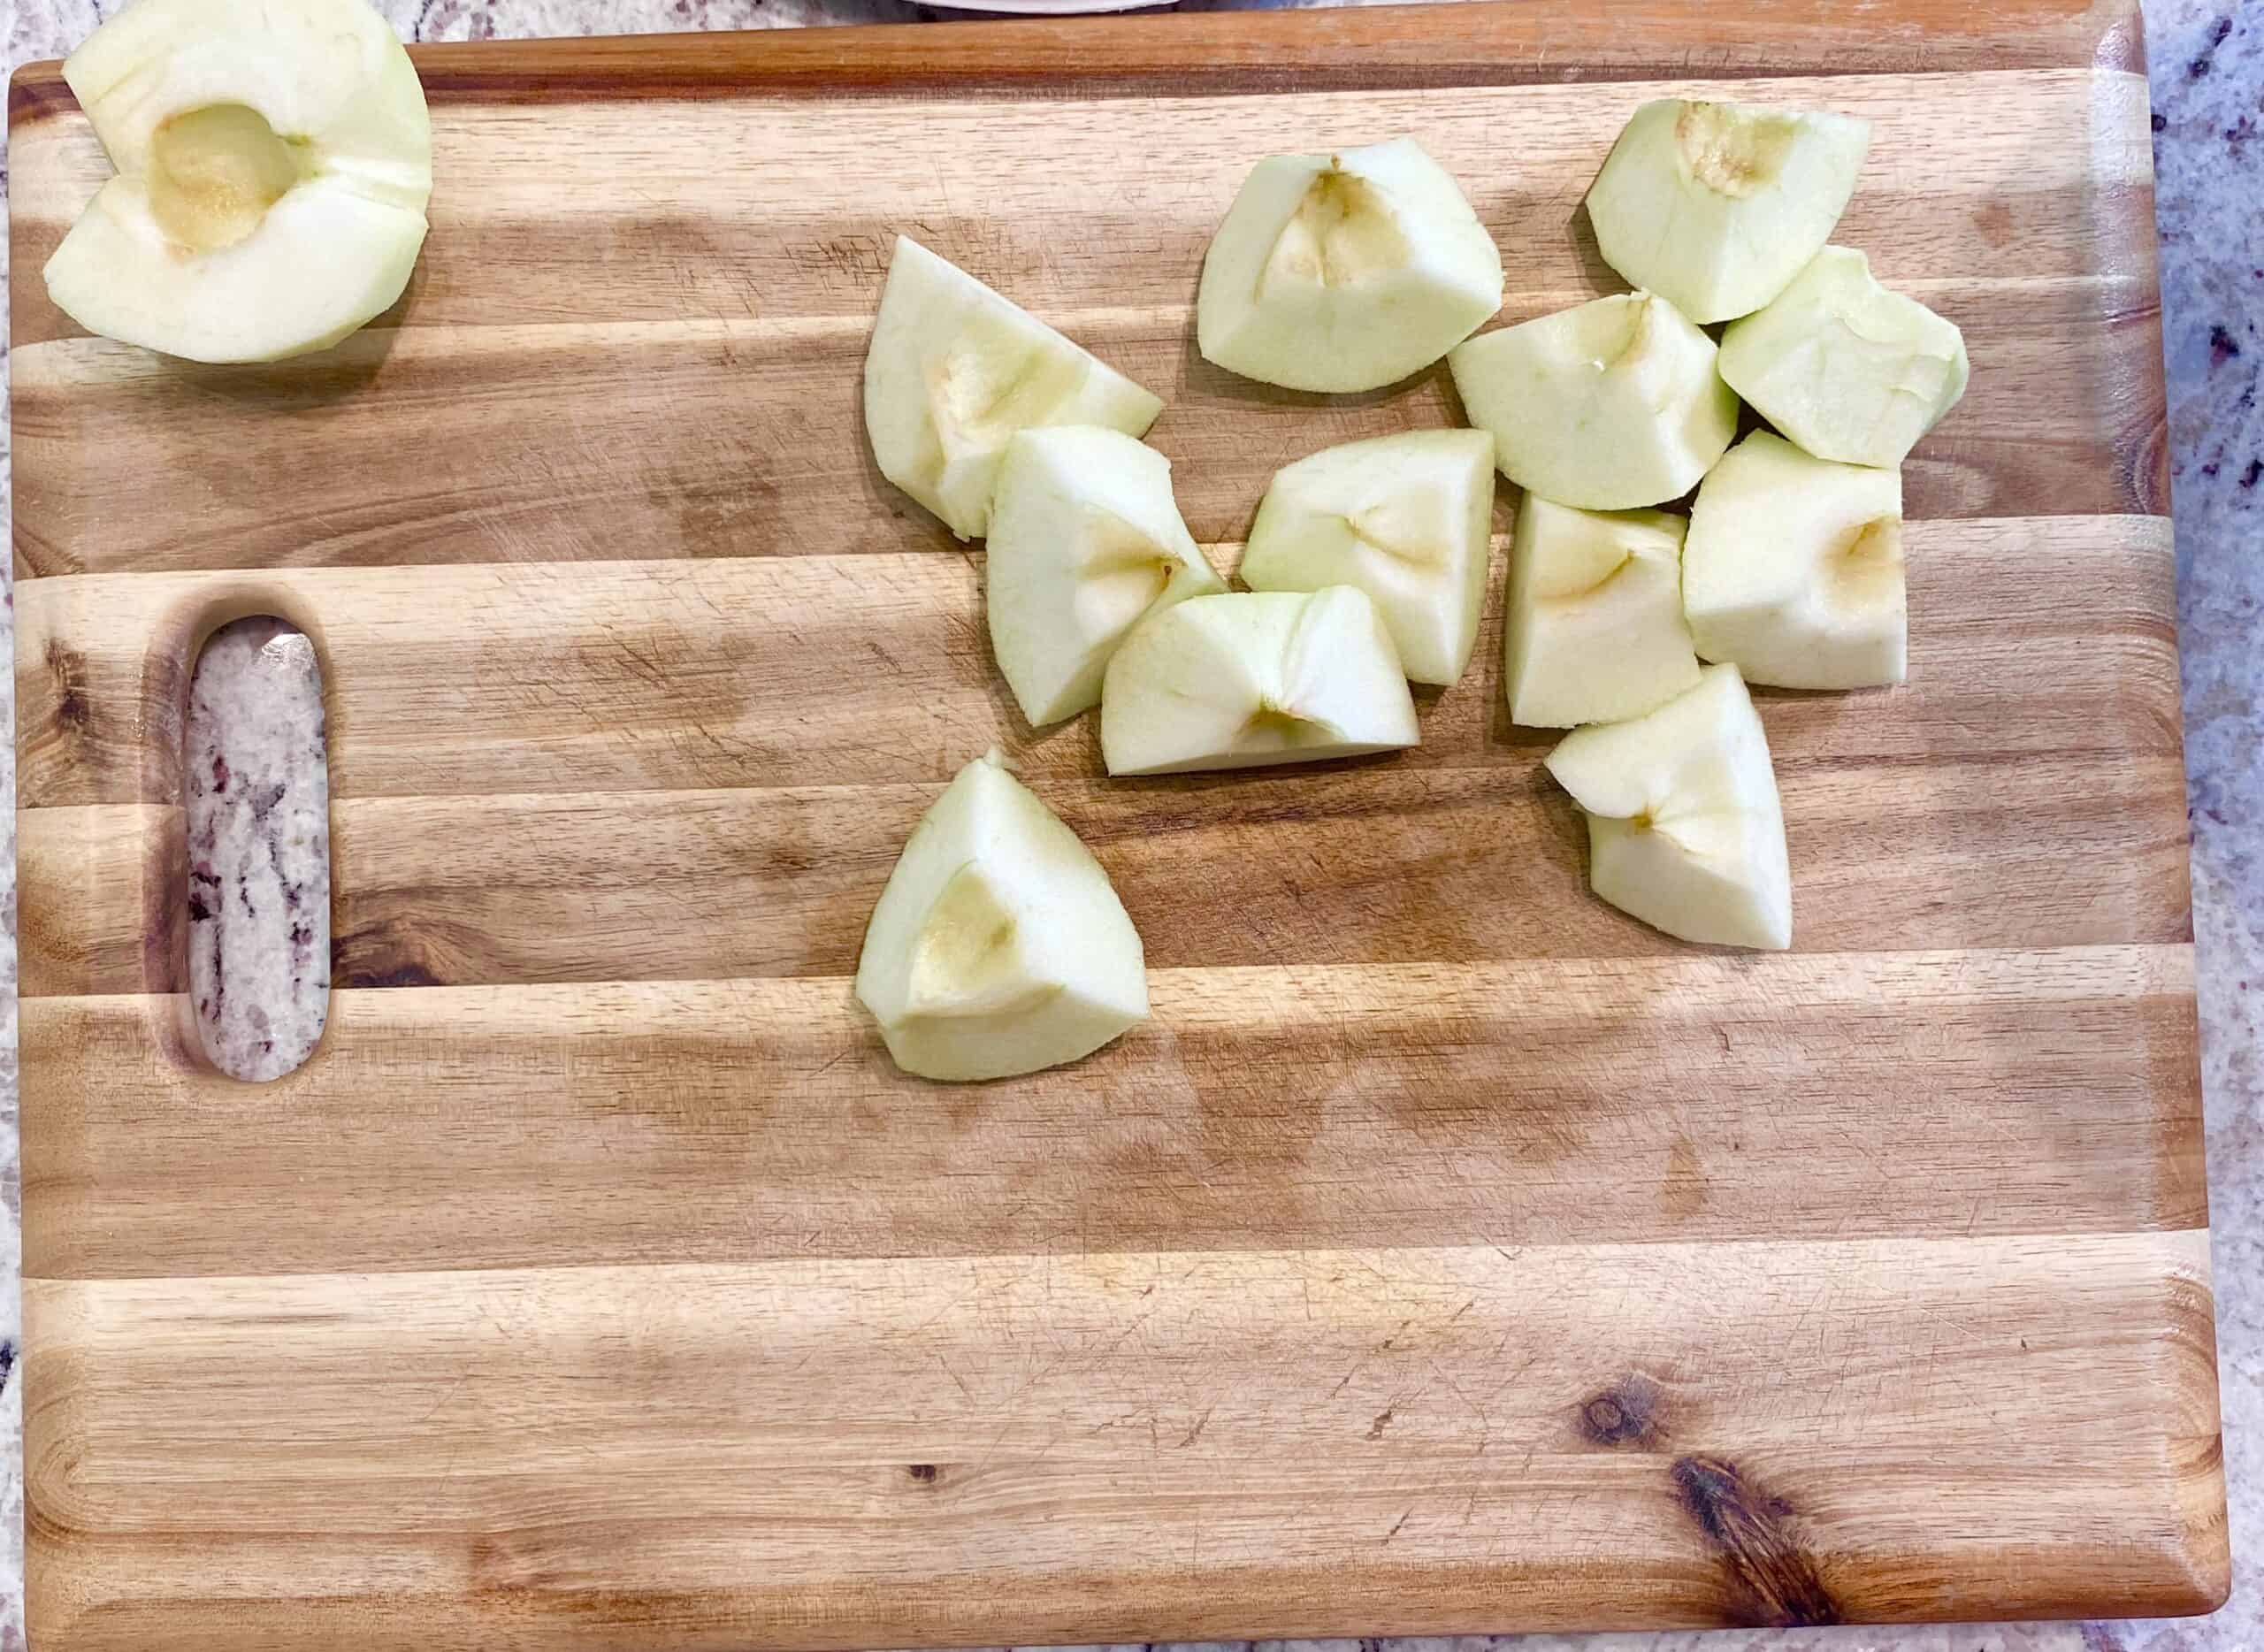 Chopped apples on a wooden cutting board